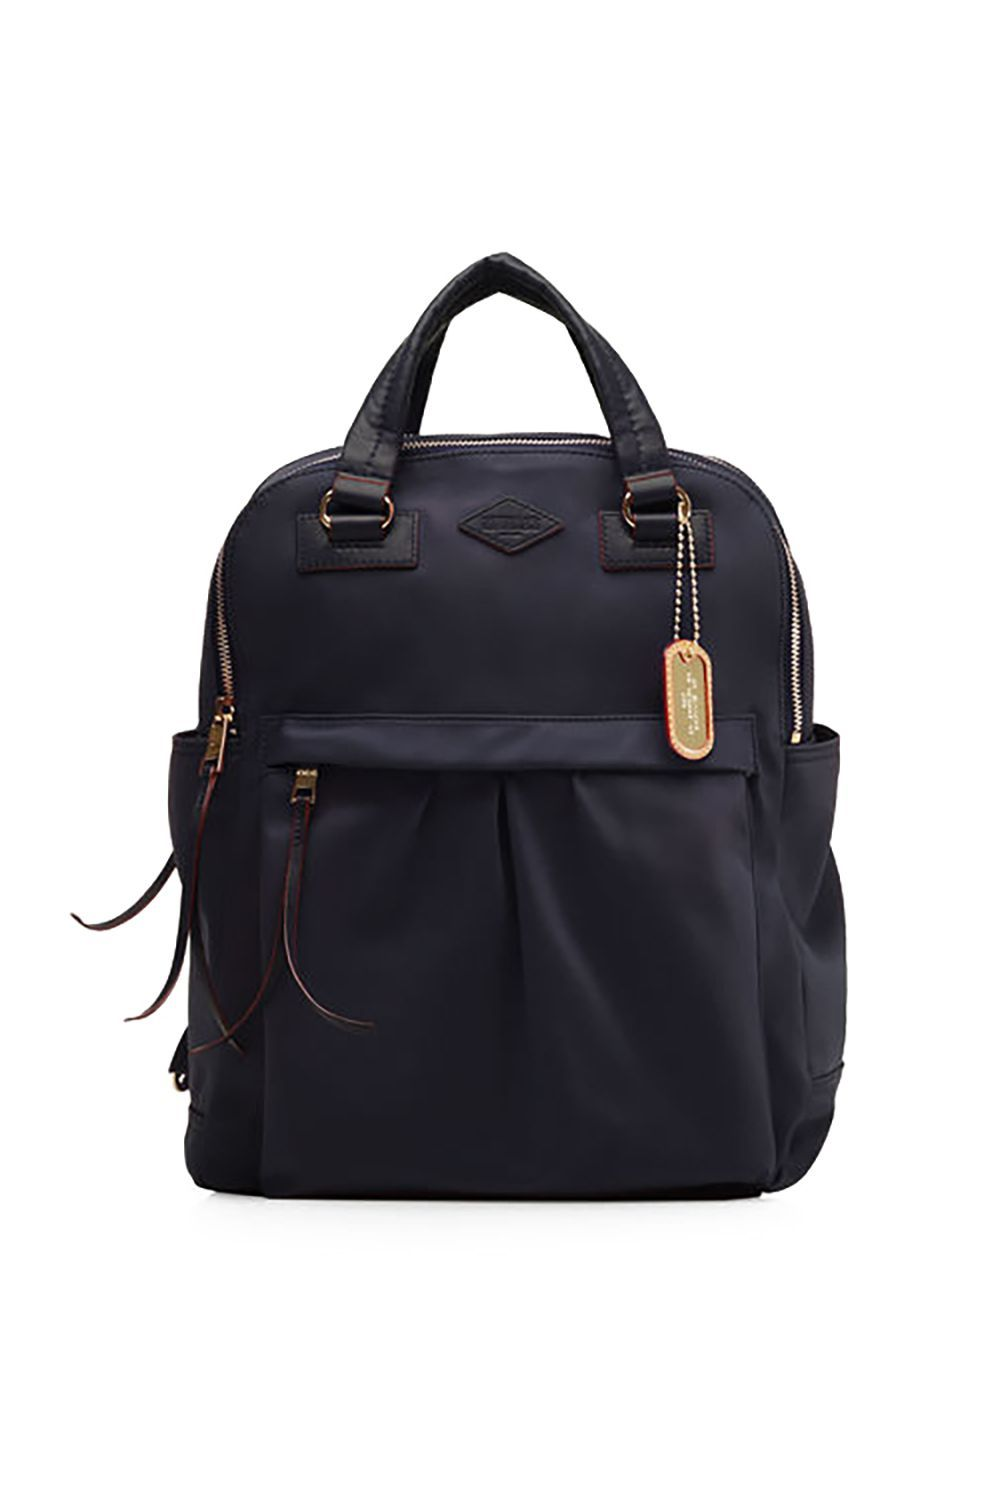 A Masseuse-Approved Knapsack MZ Wallace $385.00 SHOP IT Hassle-free commutes call for a cute knapsack like this MZ Wallace pick equipped with a padded laptop compartment and two handles to carry it into meetings. Genius.